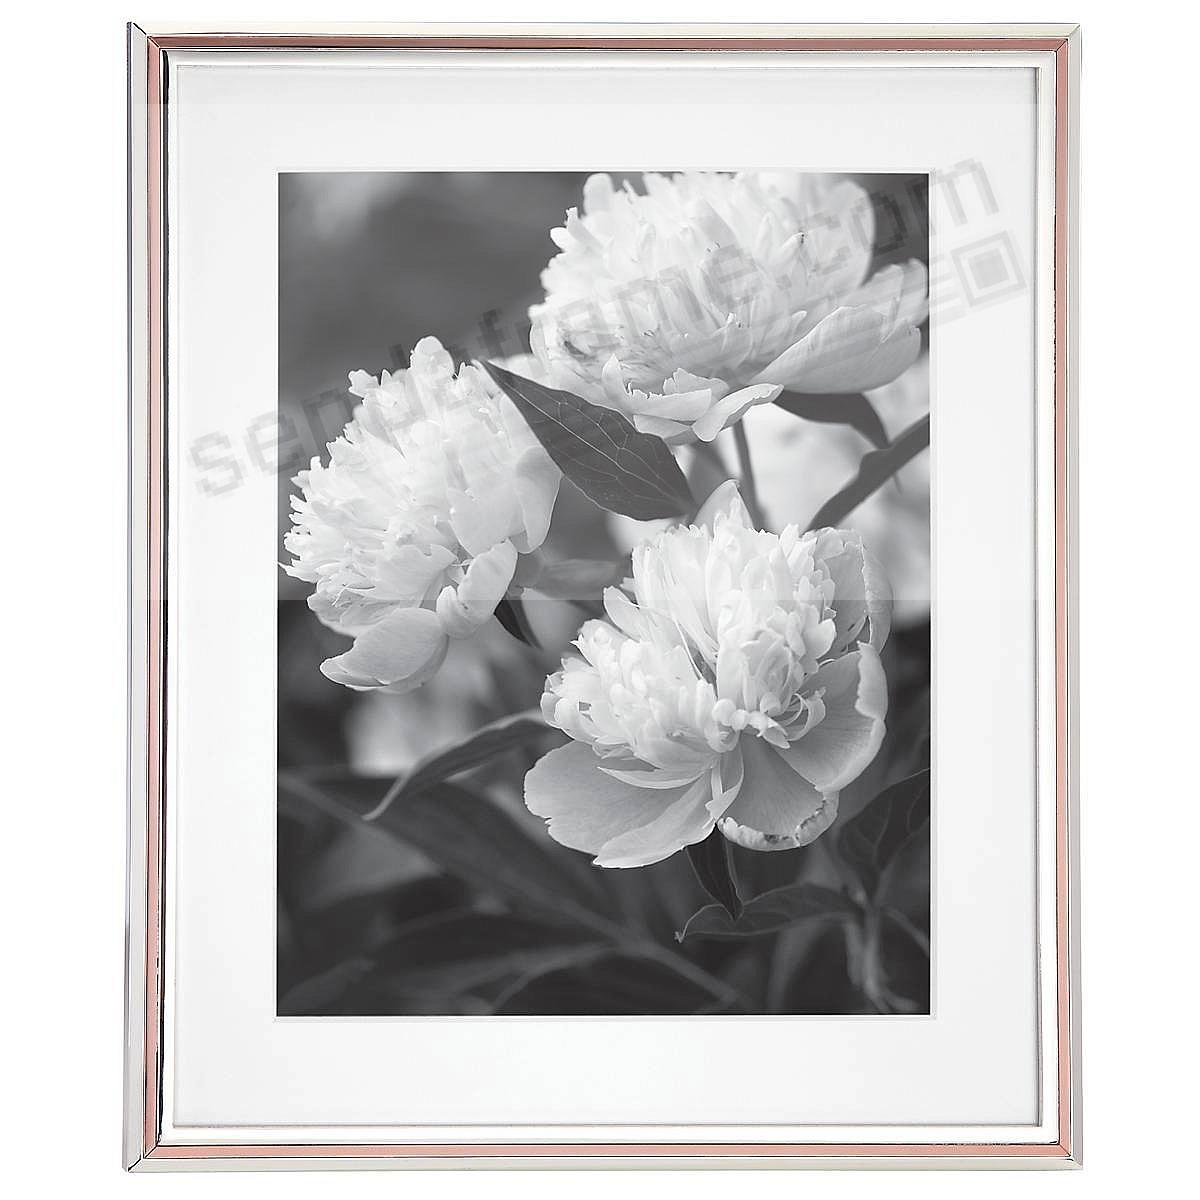 ROSY GLOW frame for 8x10 prints by kate spade new york®